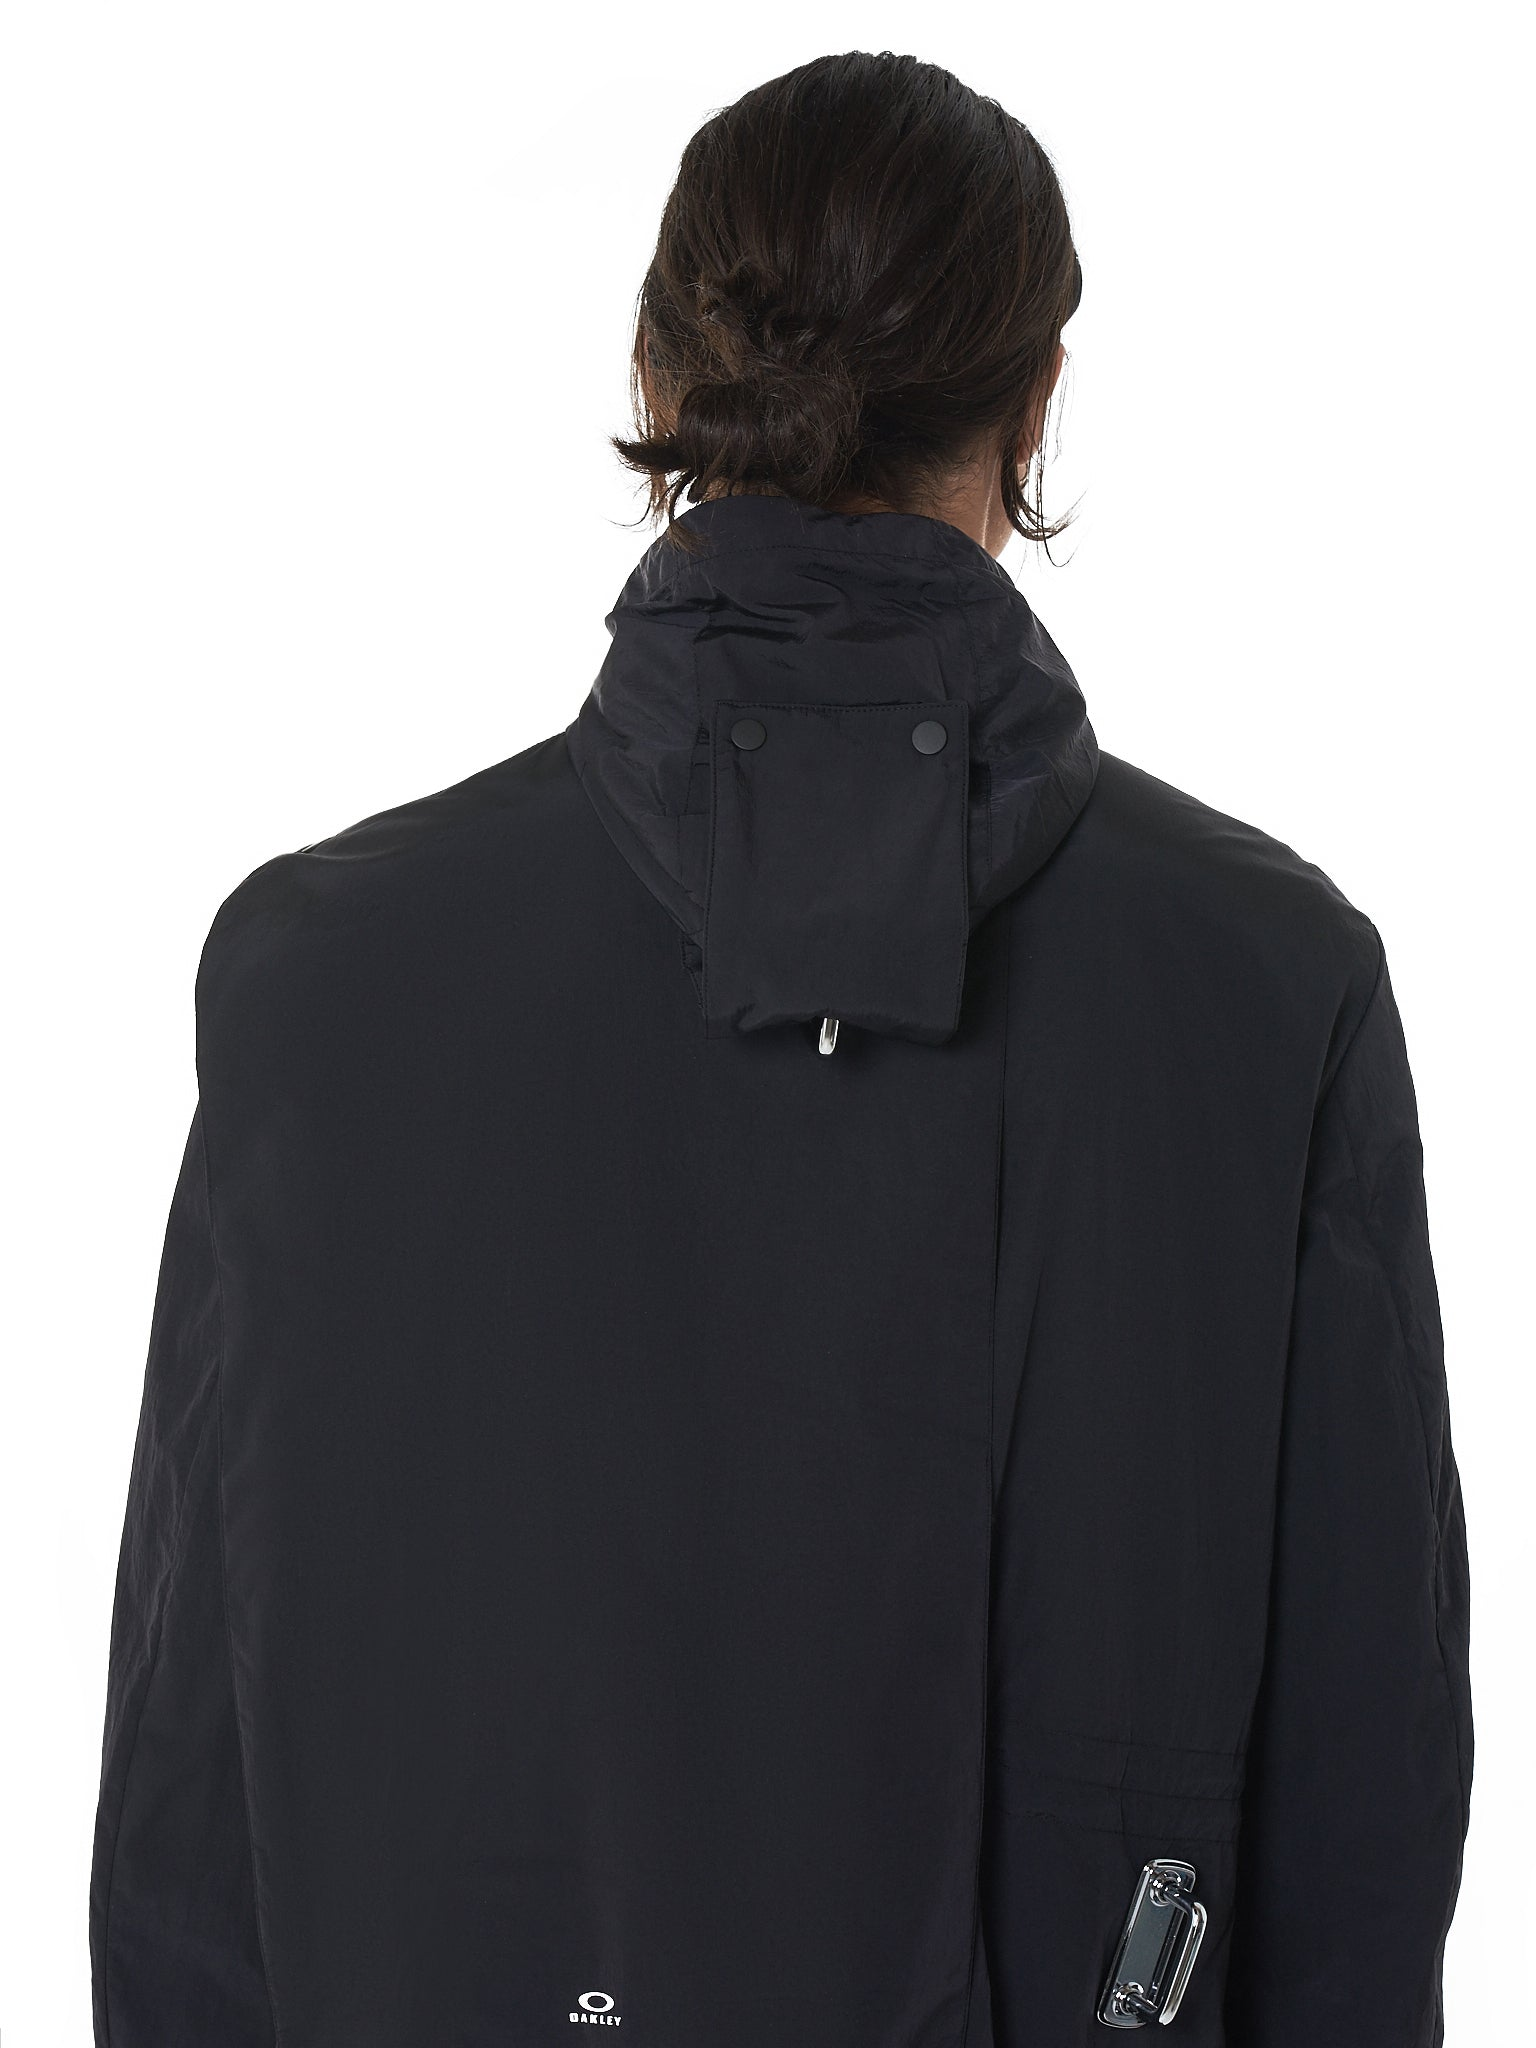 Oakley by Samuel Ross Coat - Hlorenzo Detail 1